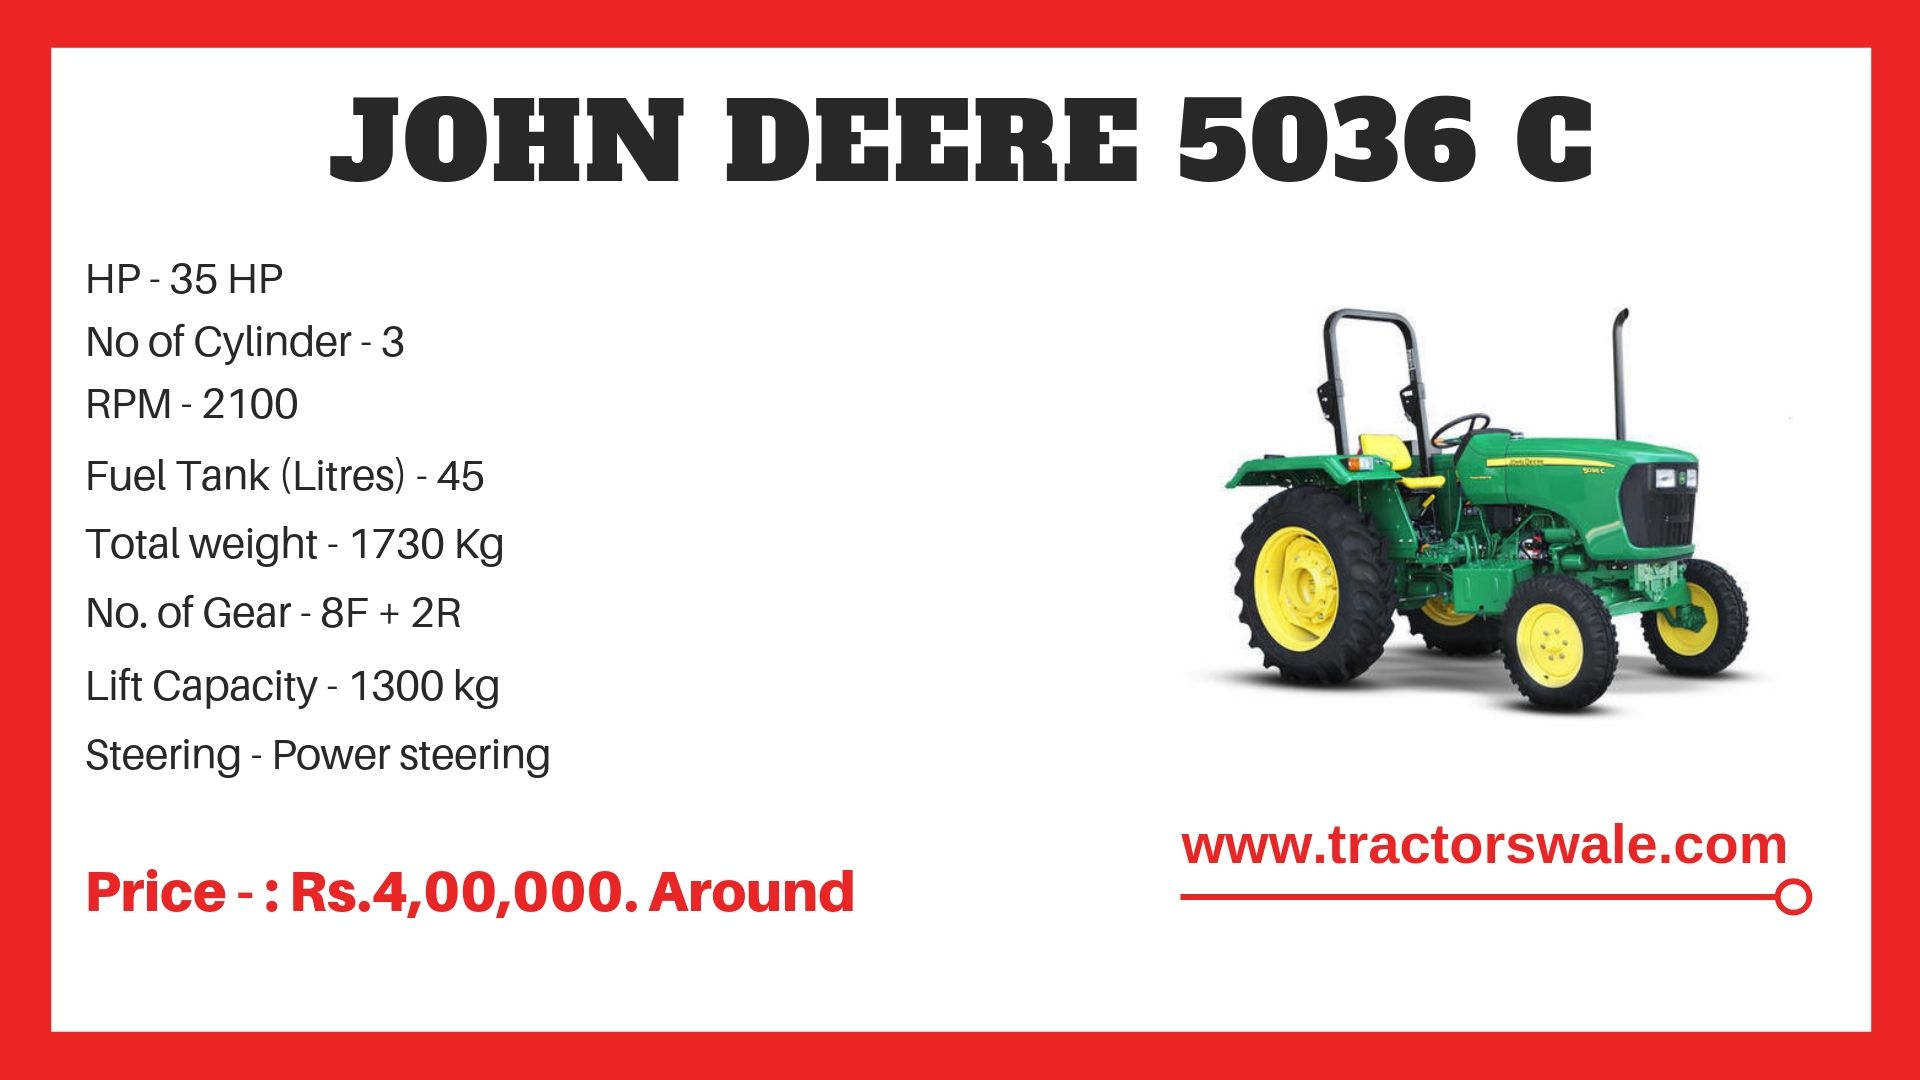 John Deere 5036 C Specifications